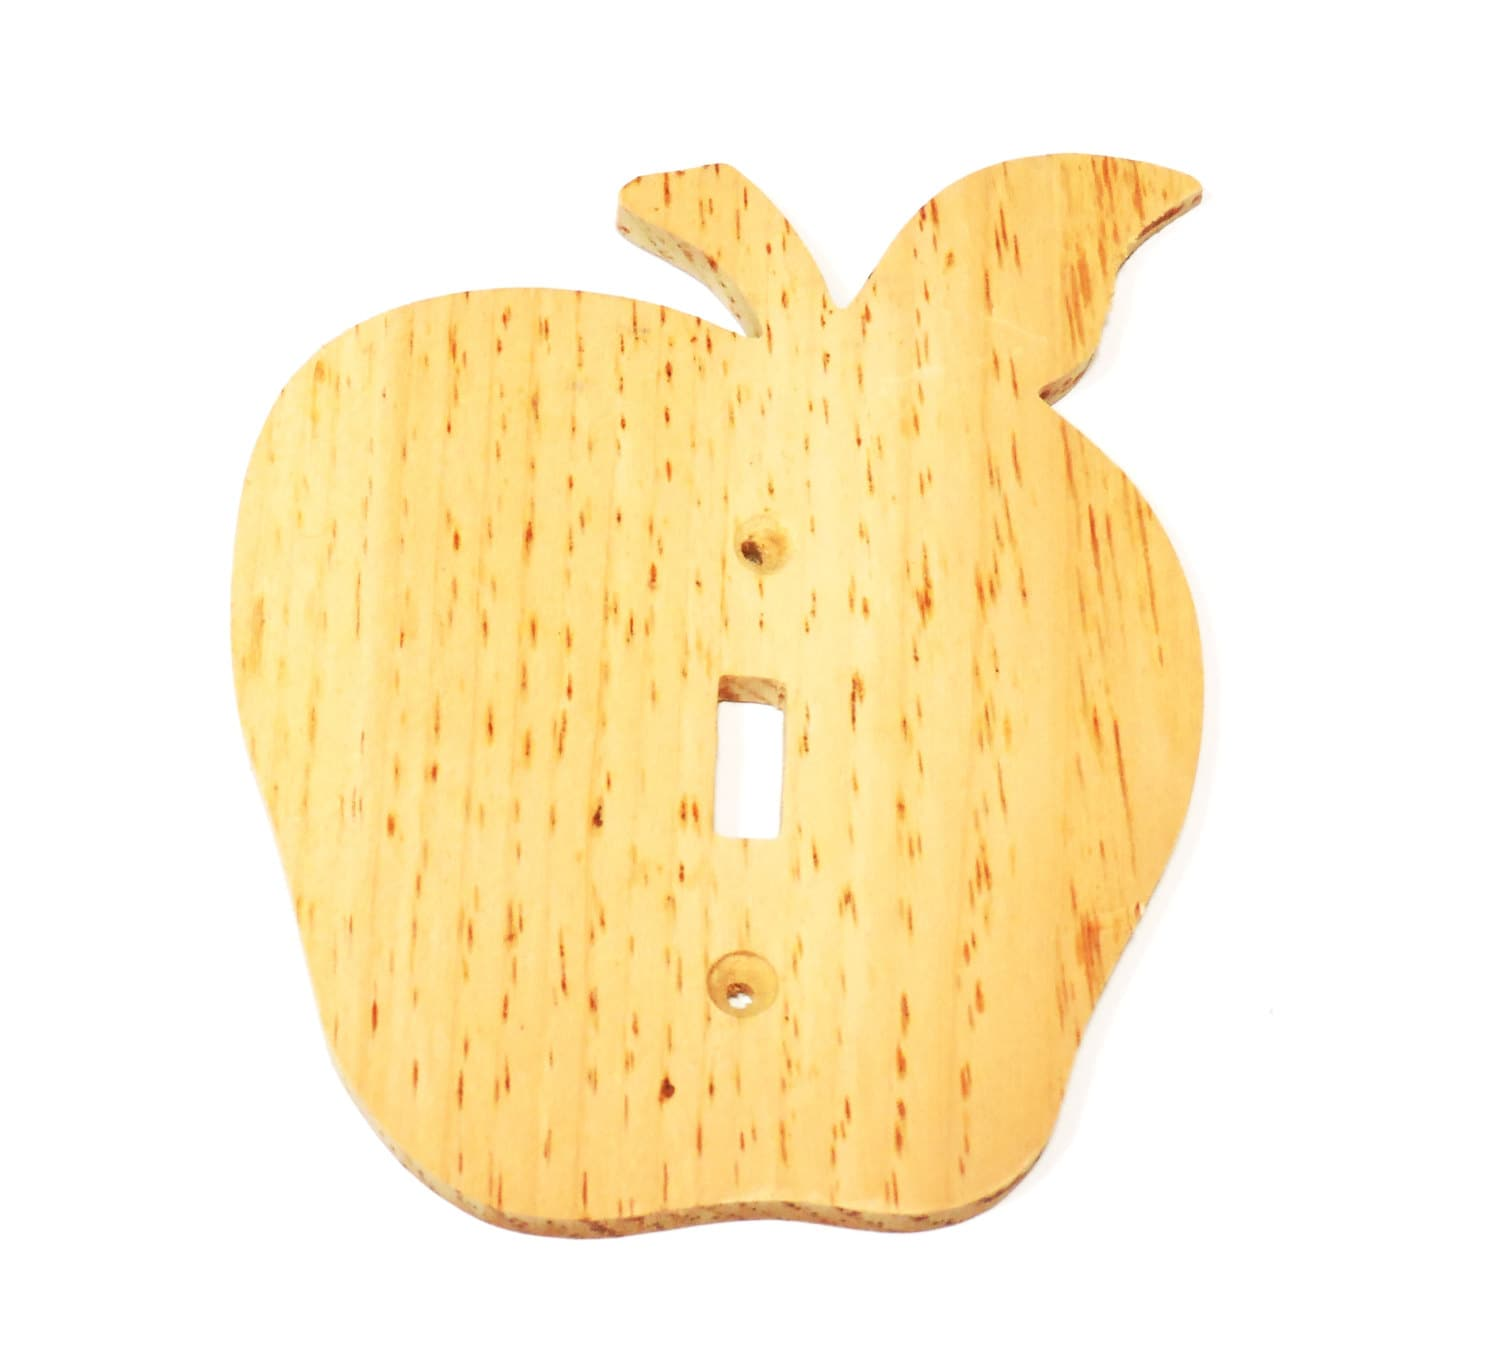 Wood Apple Light Switch Cover to Paint, Unfinished Wooden Apple ...